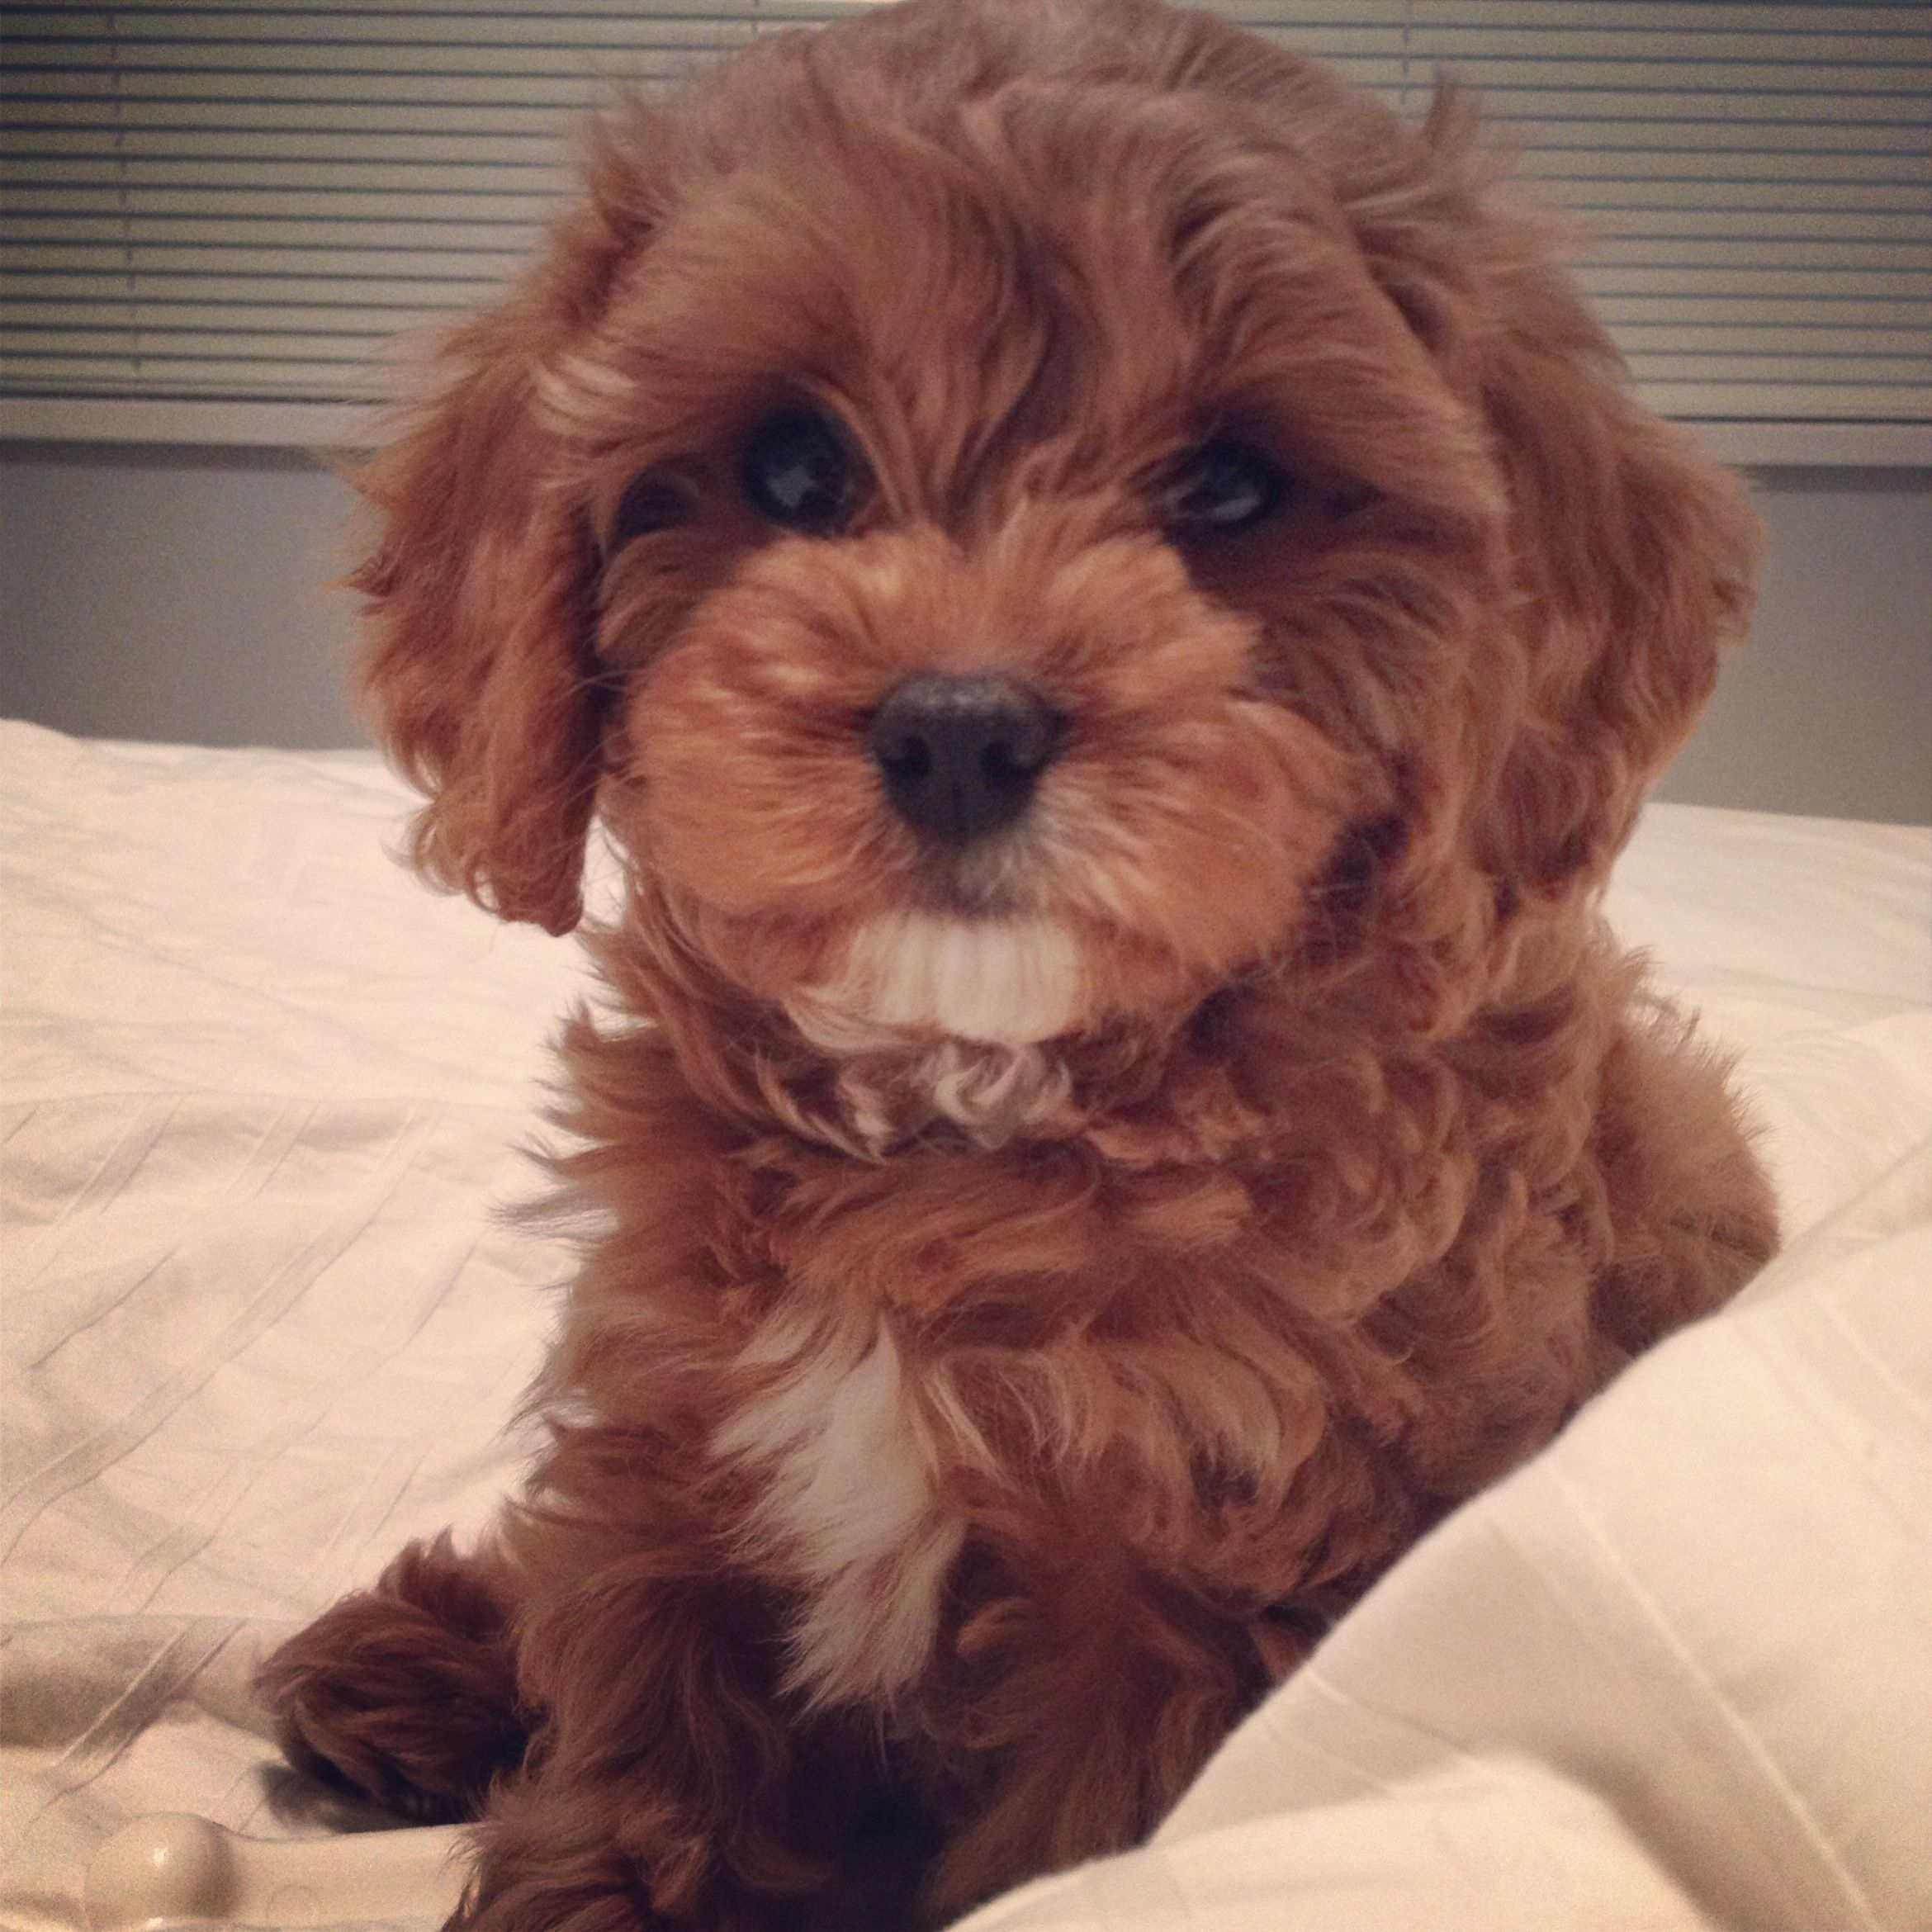 Cavapoo Cavalier King Charles Spaniel And Poodle Mix Puppies